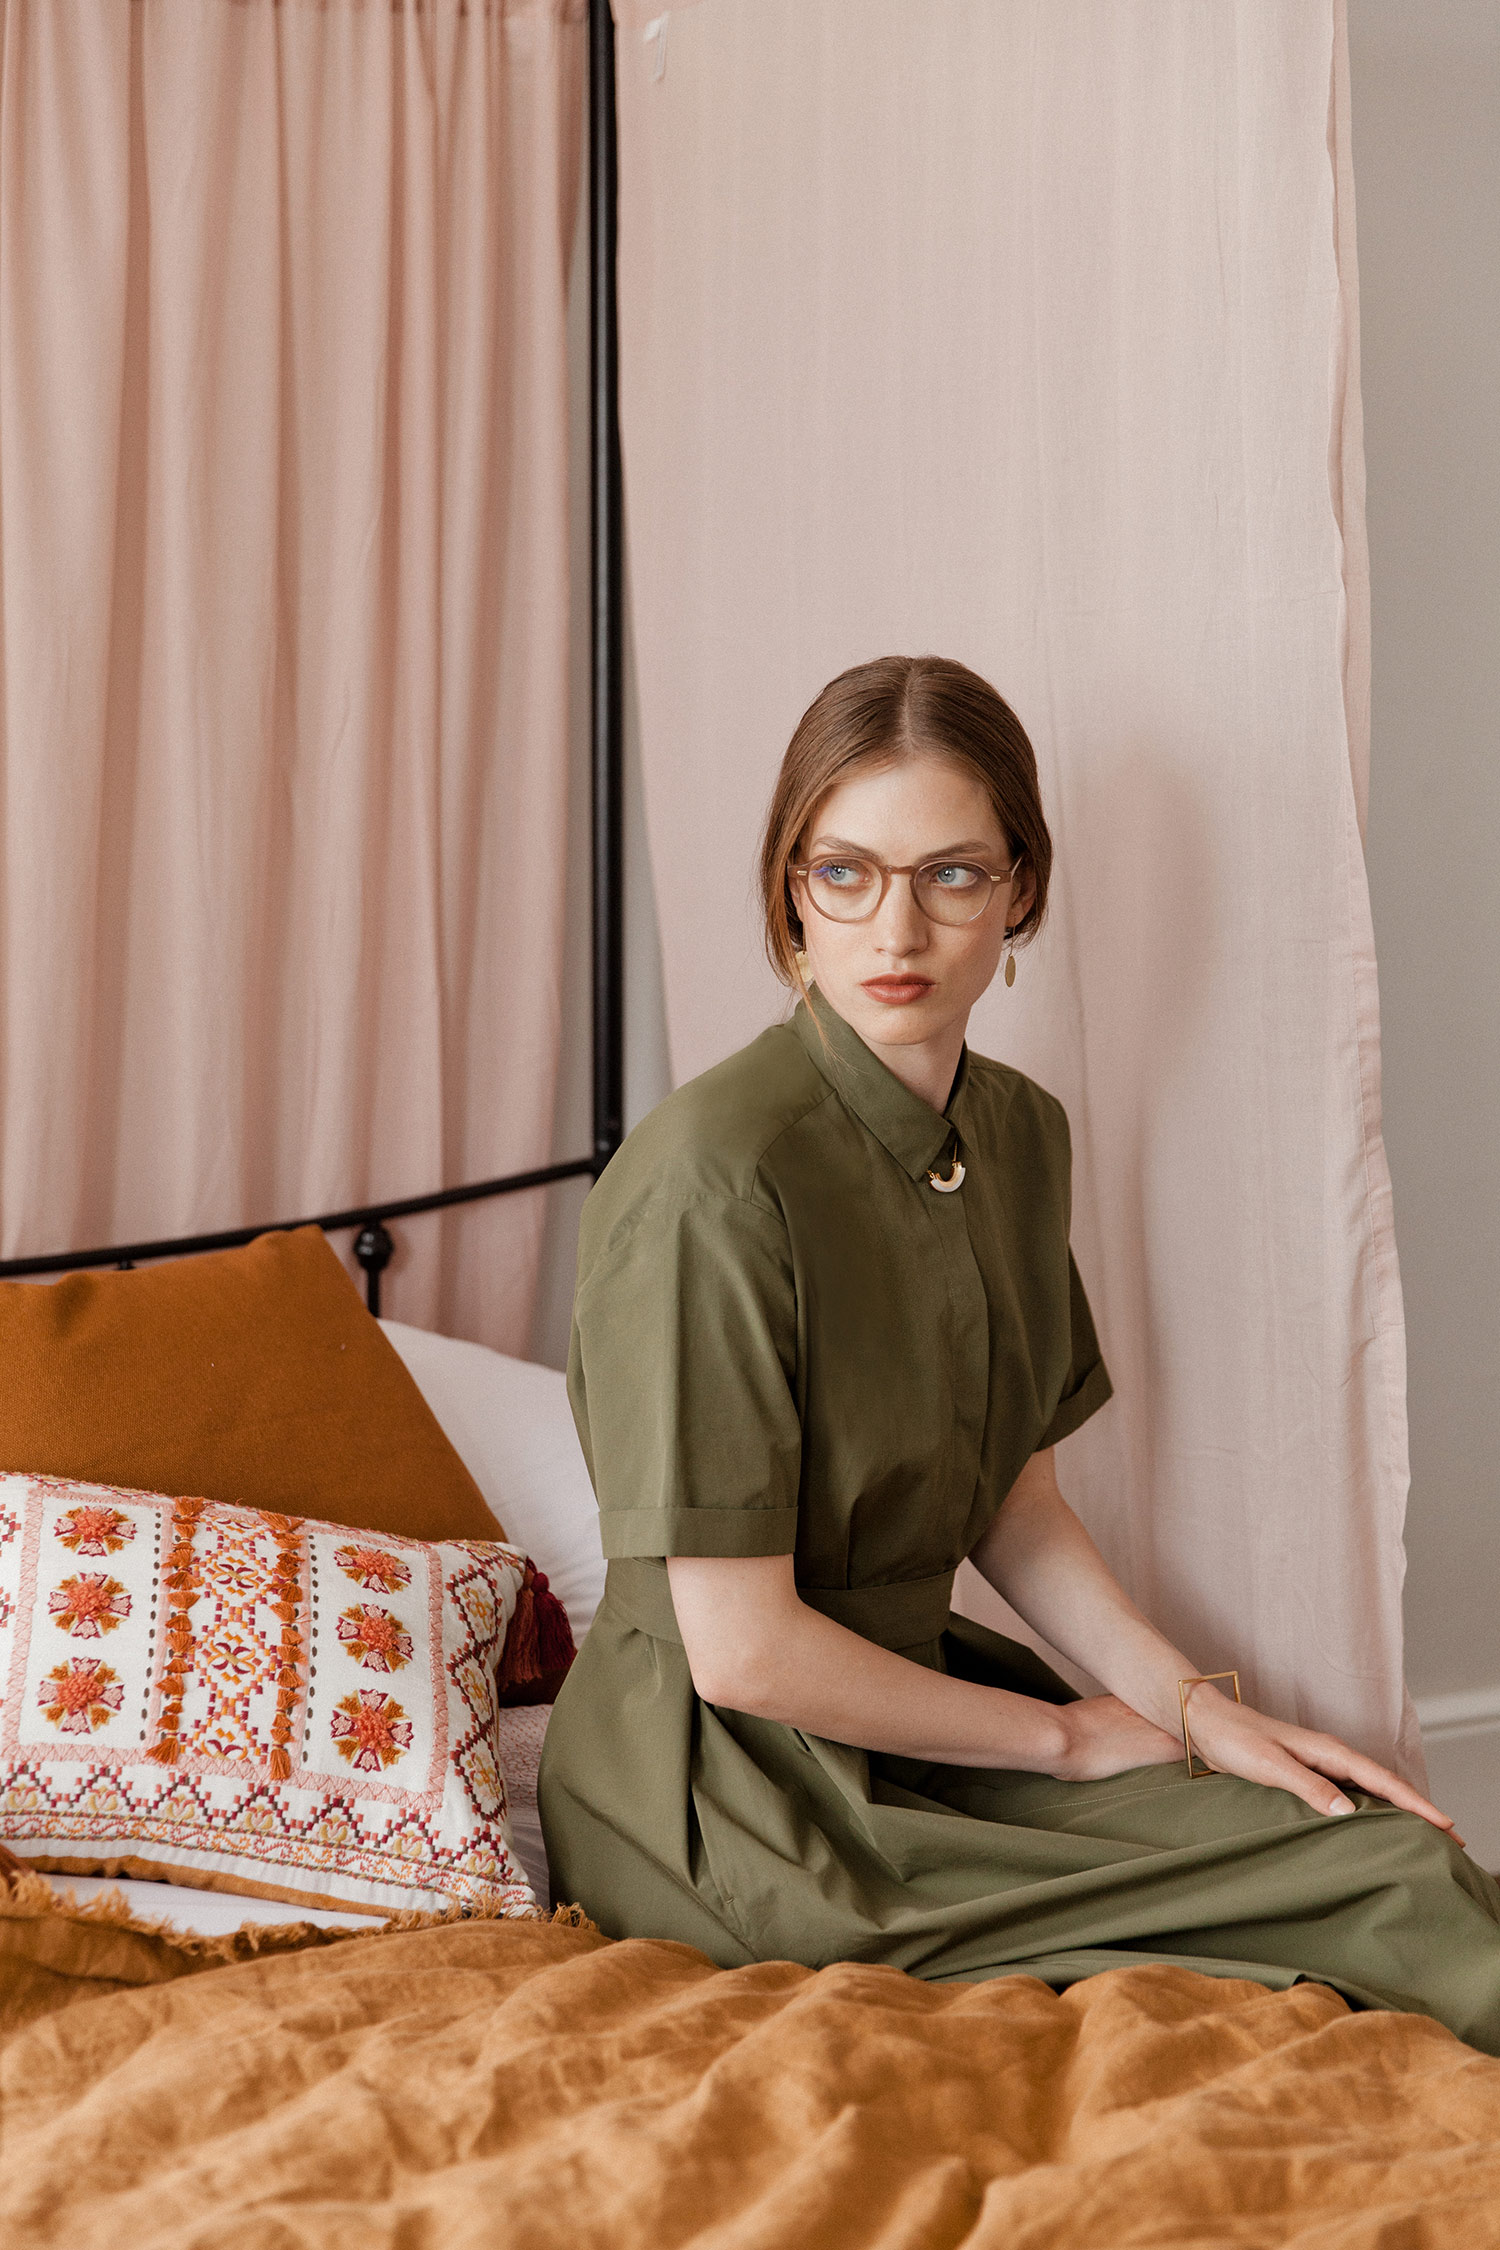 YMC Joan Dress olive, £225, Found; Pink crescent acrylic/wood necklace by Wolf & Moon, £28, Quadri; No.25 earrings, £35, Alice Bosc; Square sterling silver/yellow gold vermeil bangle by Anuka, £168, Quadri; Frames (model 1313) in Humble Potato, £285, Cutler and Gross